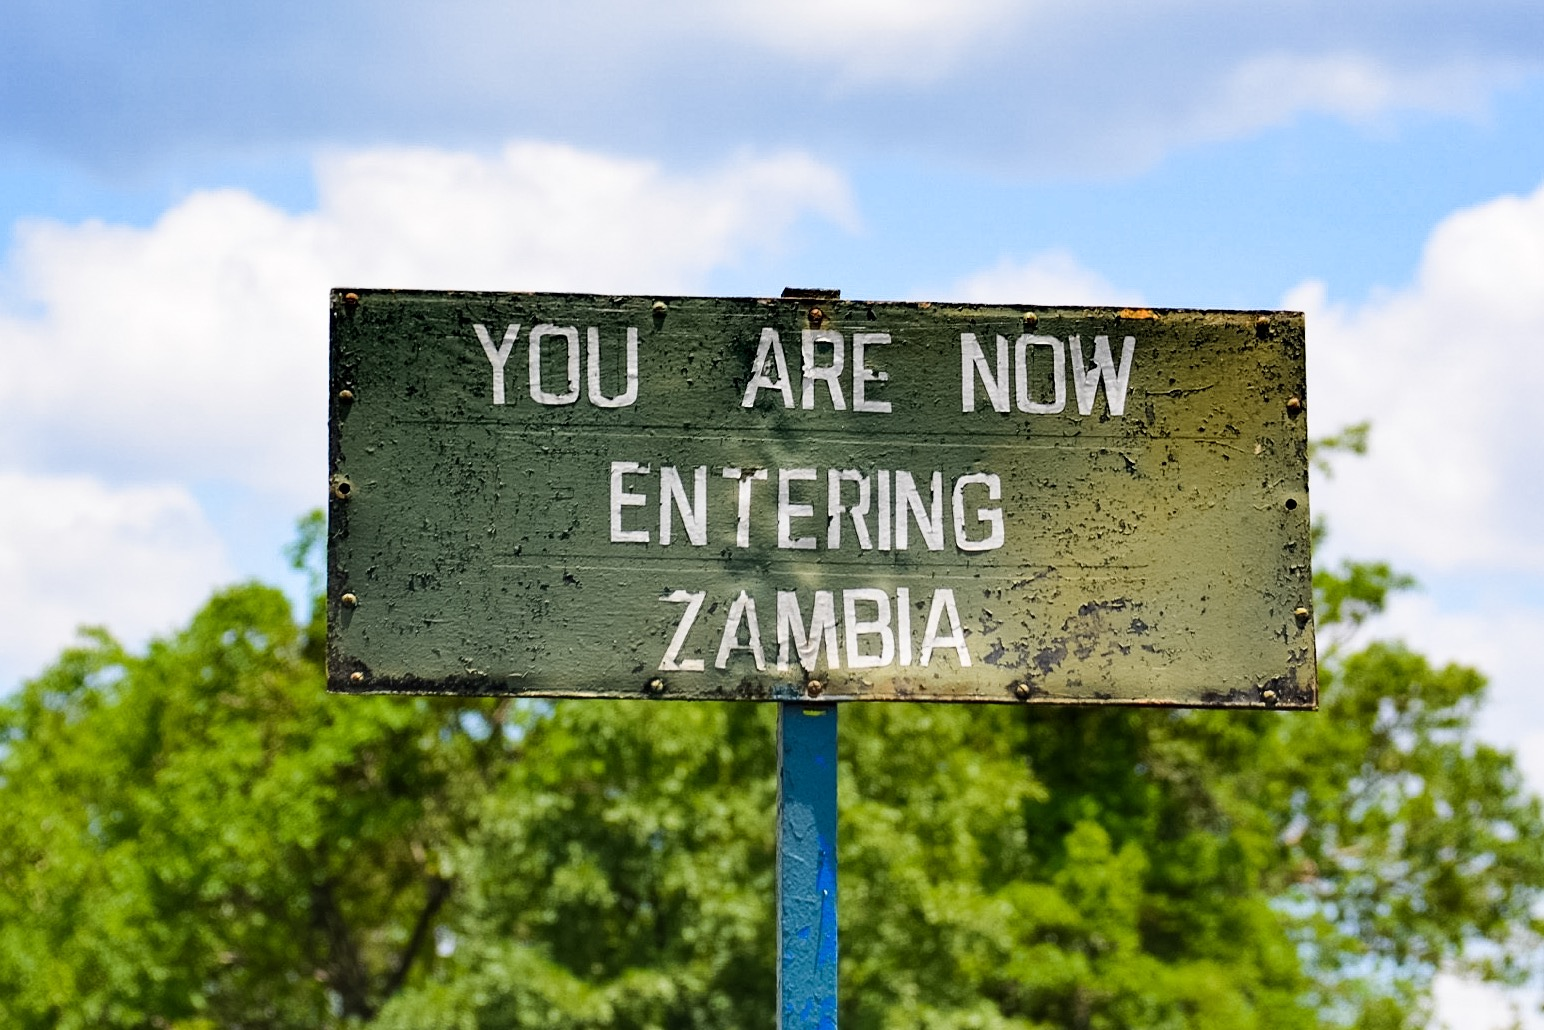 entering zambia sign